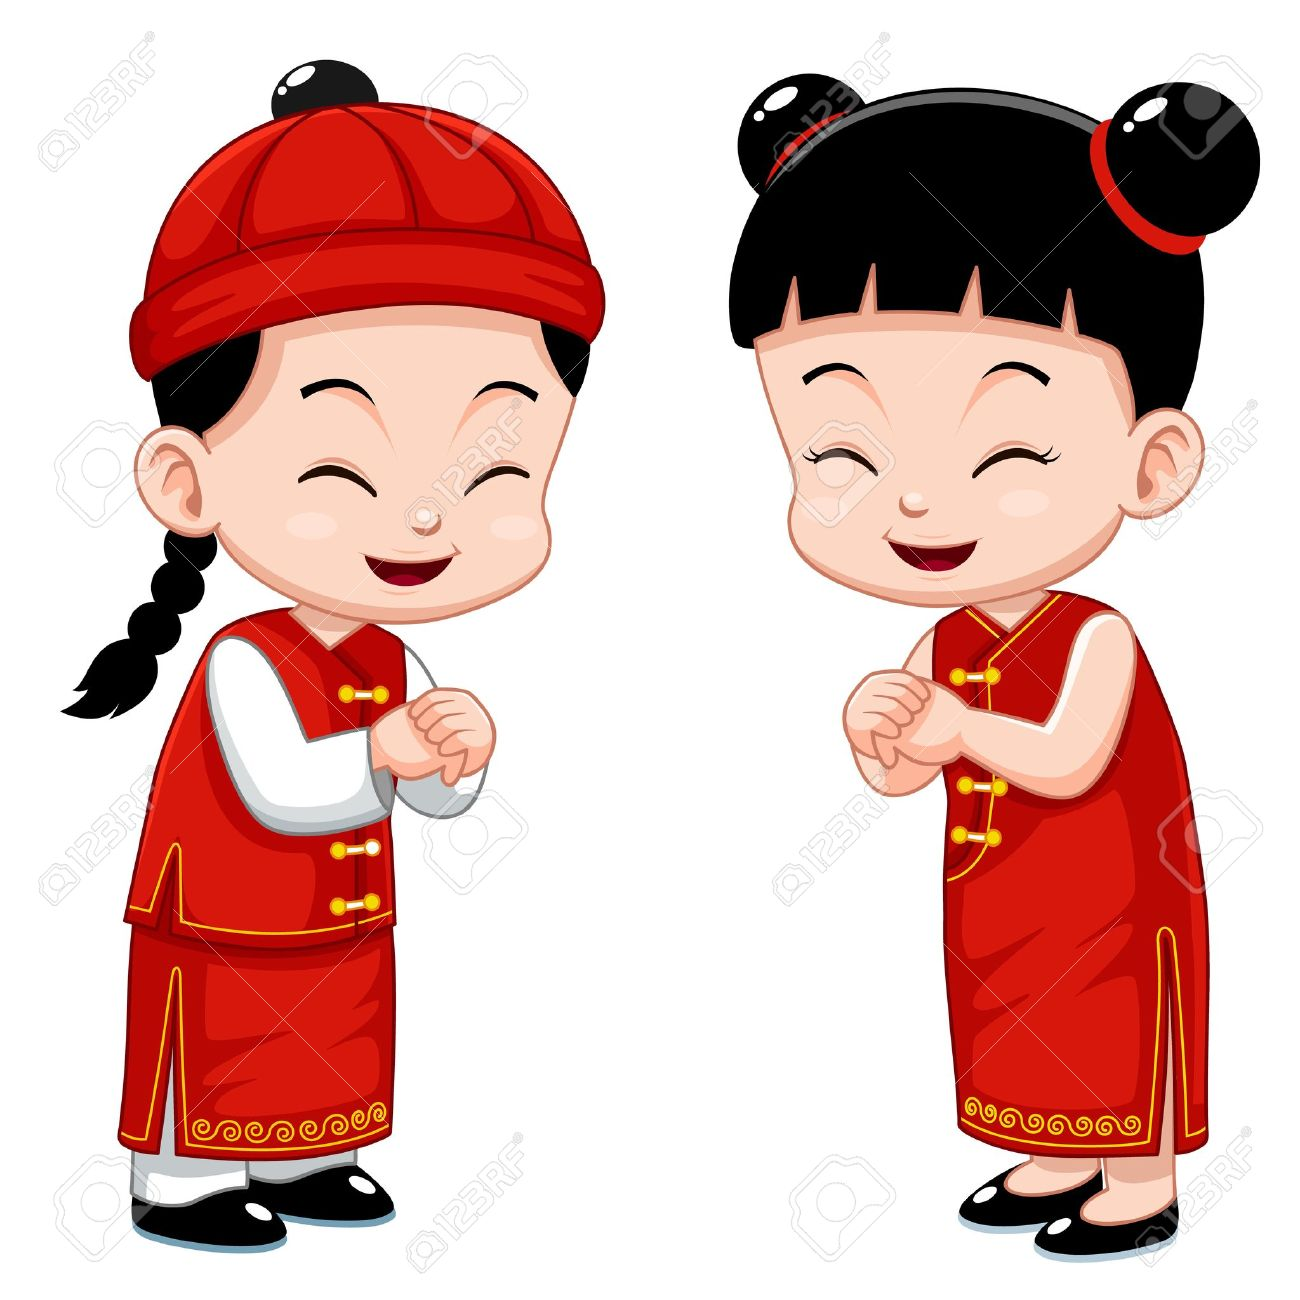 Chinese Kids Stock Vector